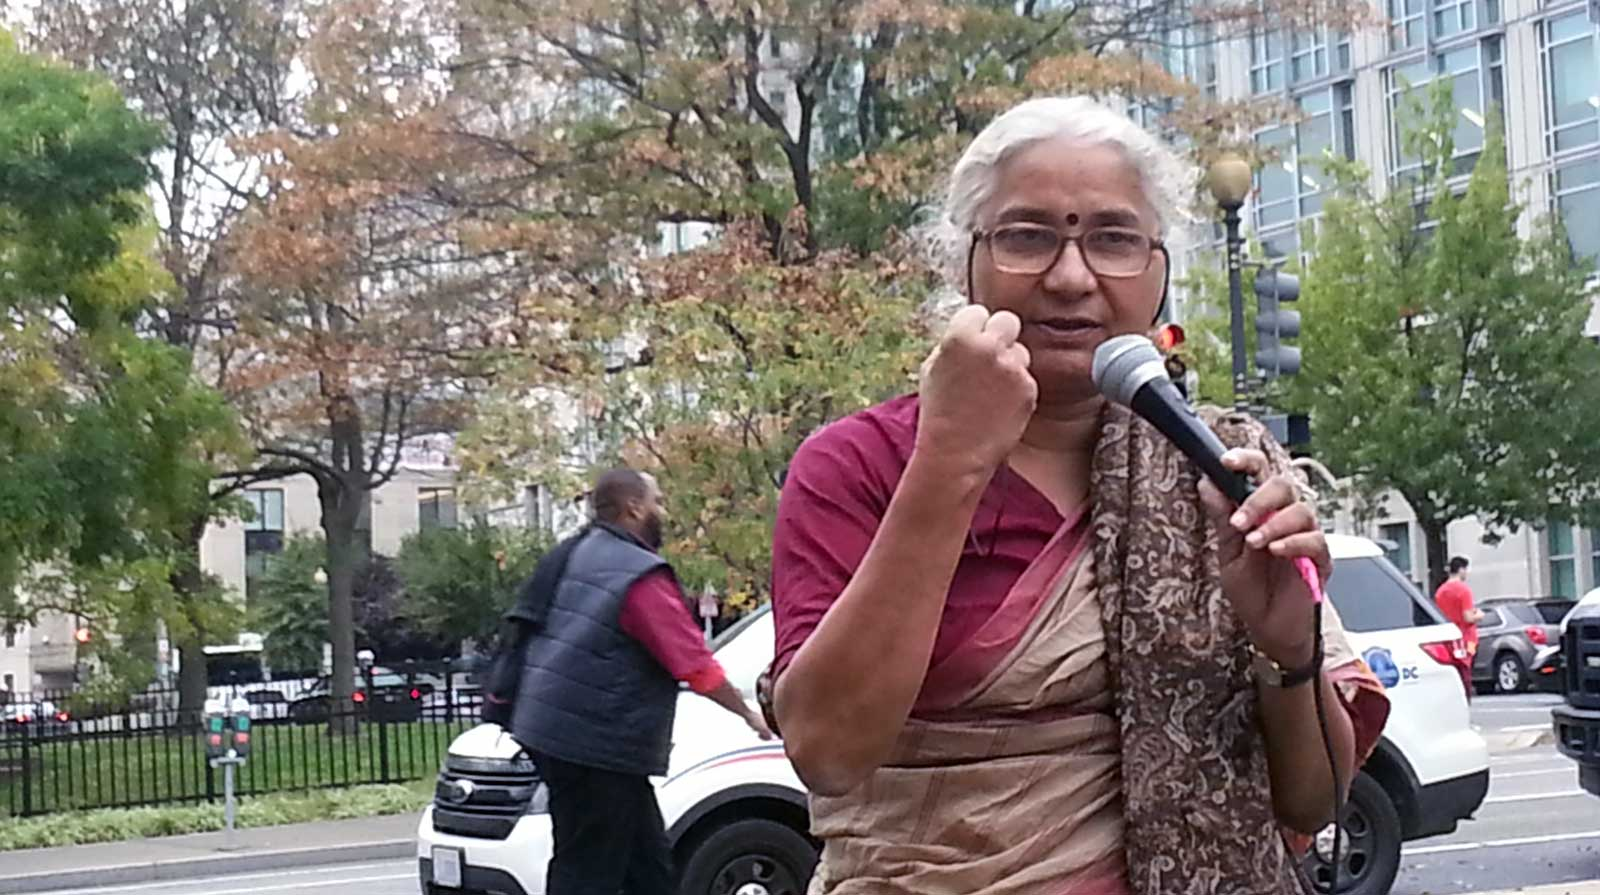 Medha Patkar at the World Bank action organized by the Oakland Institute in 2014